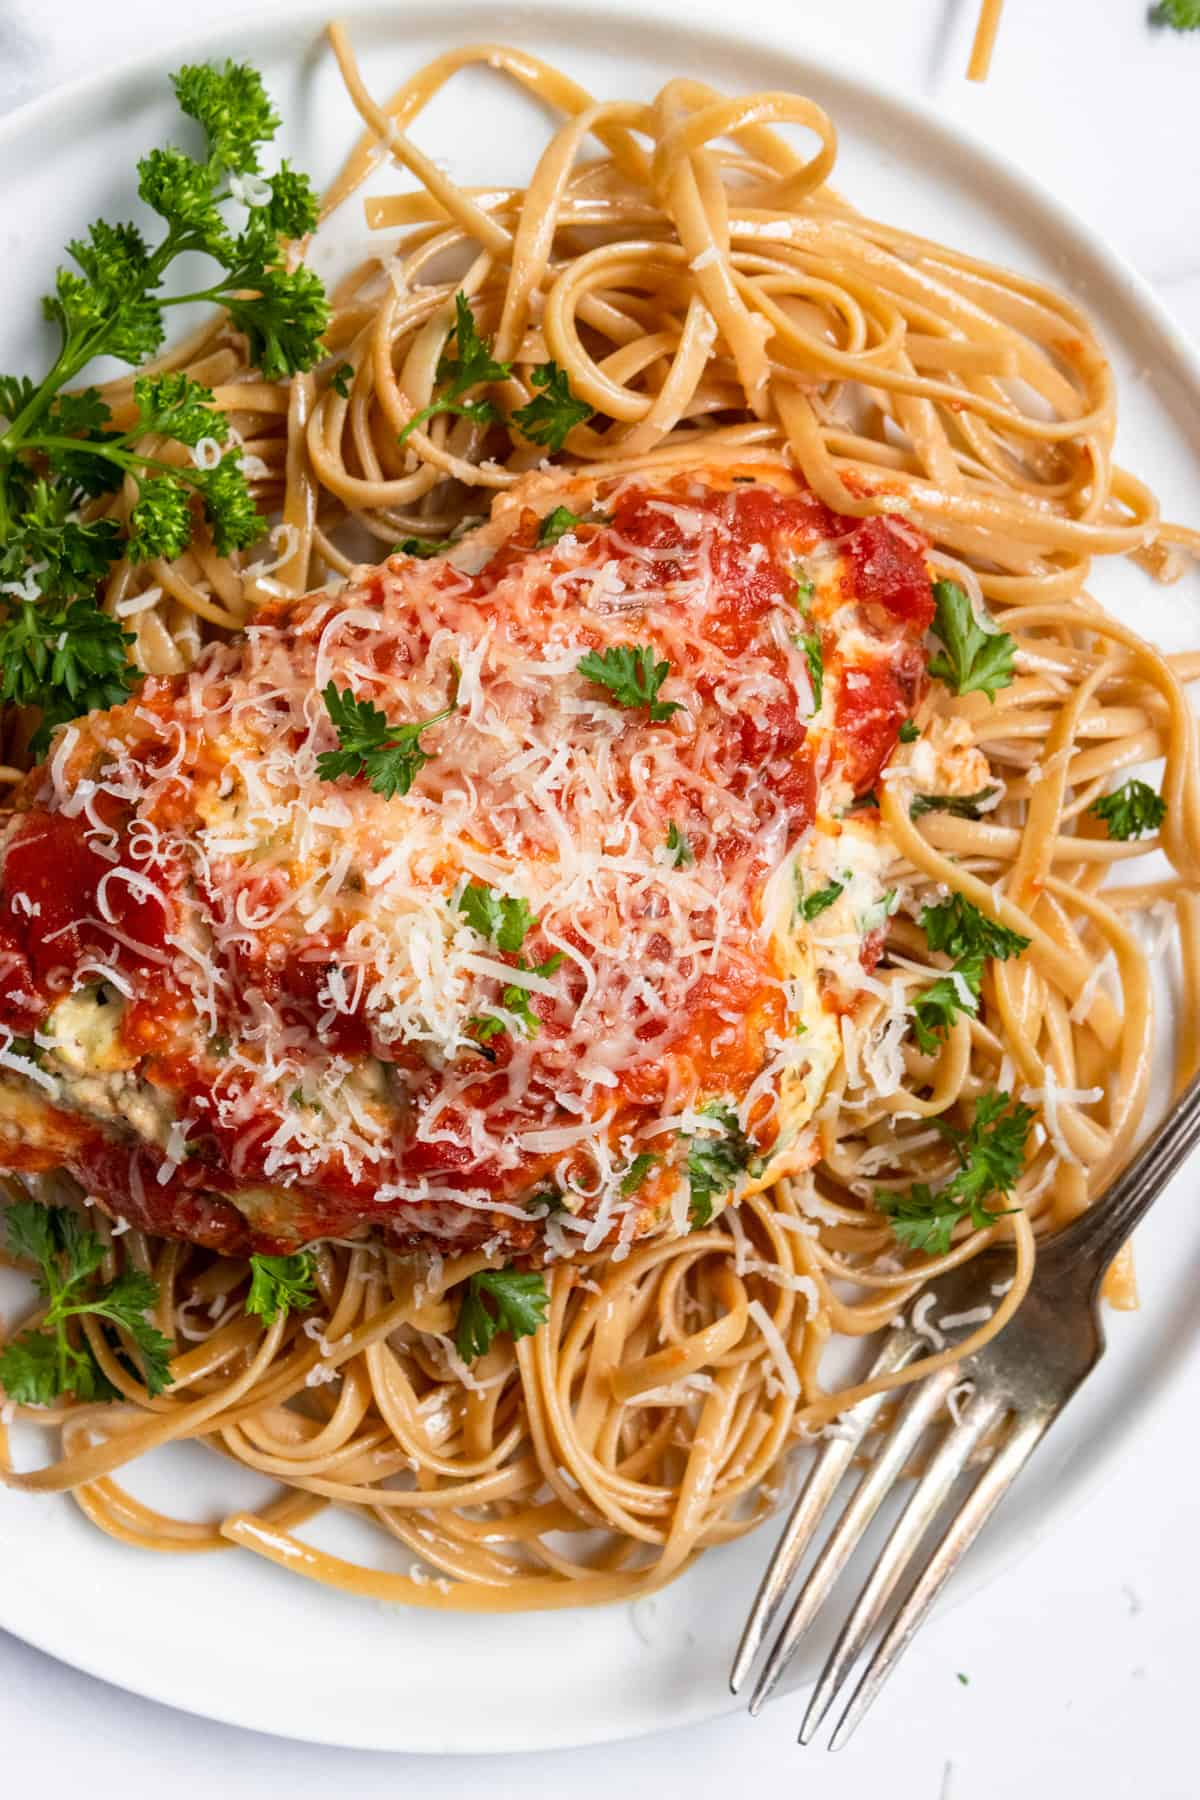 Chicken with marinara and parmesan on pasta with parsley on white plate.